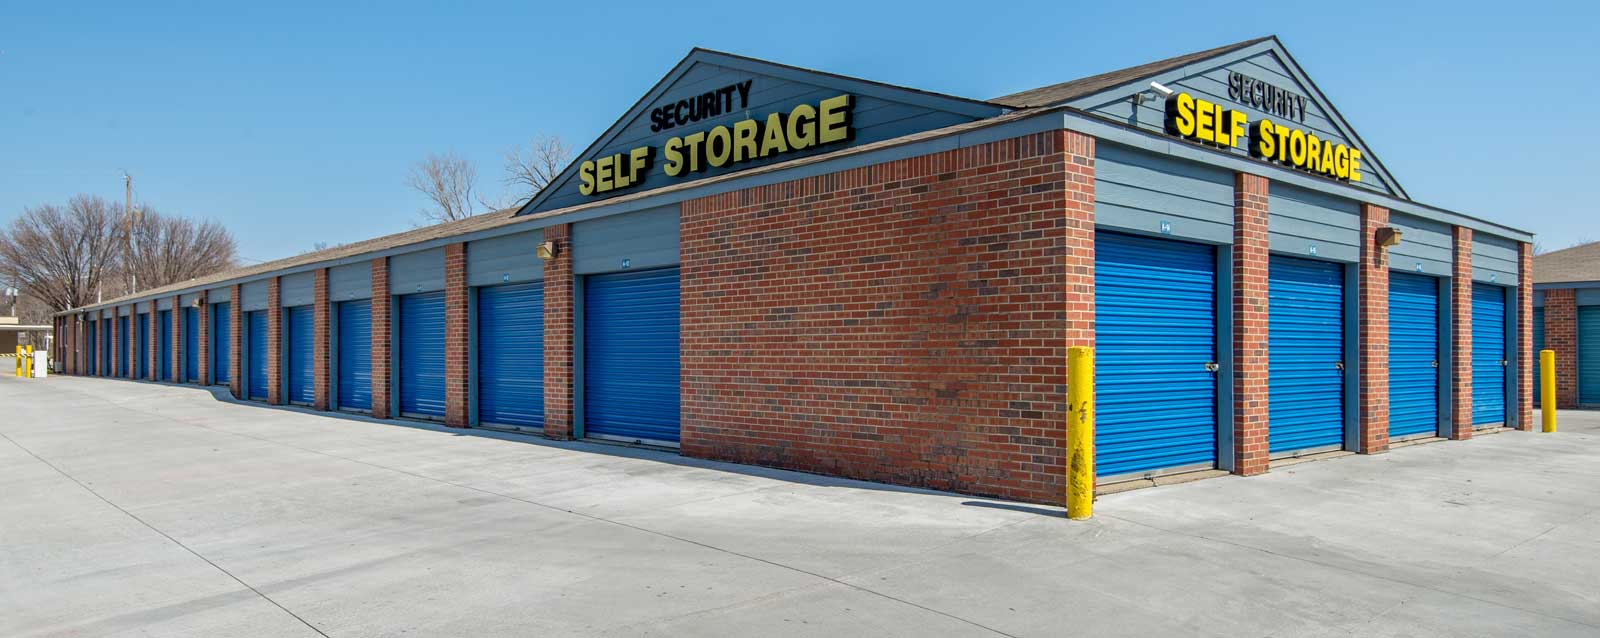 Drive up units at shawnee self storage